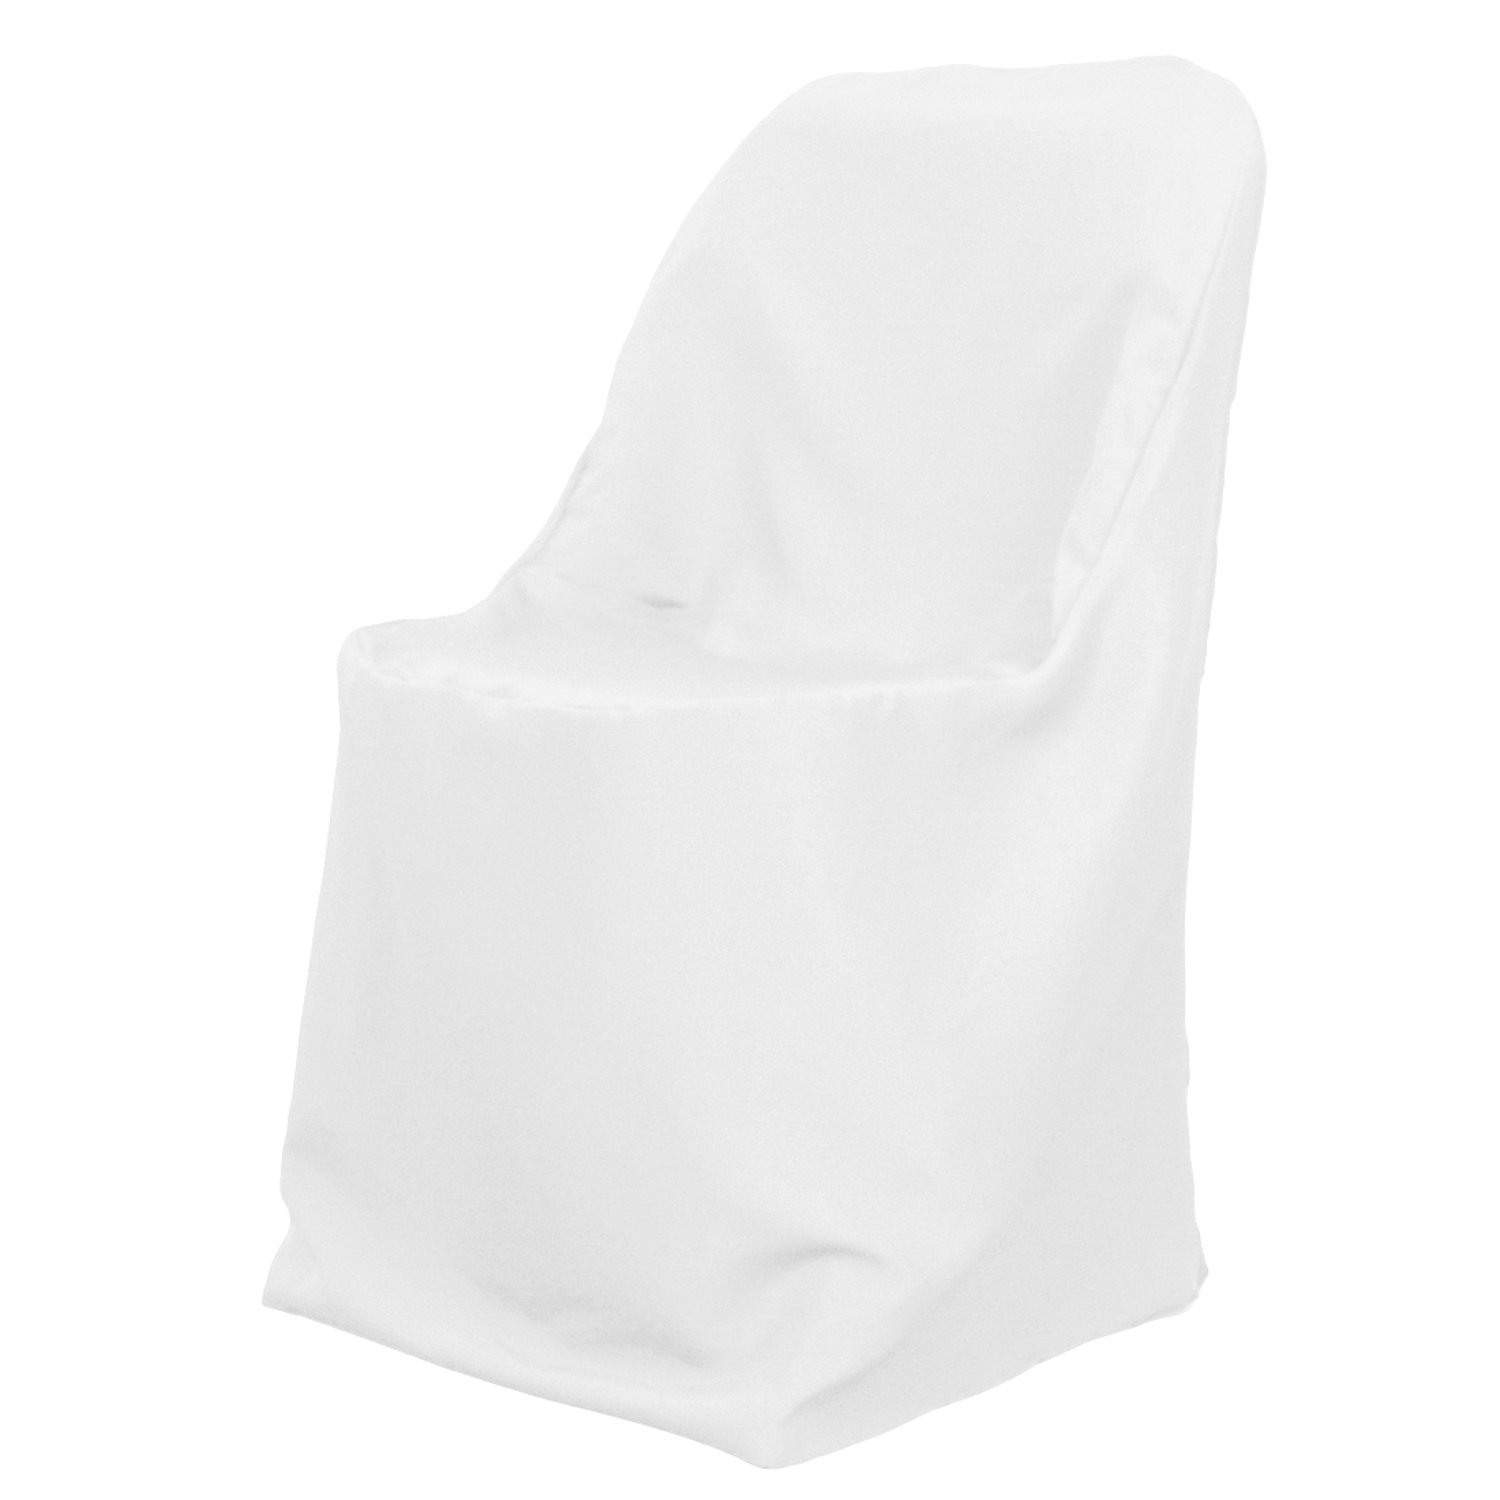 Fabulous Craft And Party Premium Polyester Chair Cover For Wedding Or Party Use White Set Of 100 Banquet Chair Cover Inzonedesignstudio Interior Chair Design Inzonedesignstudiocom